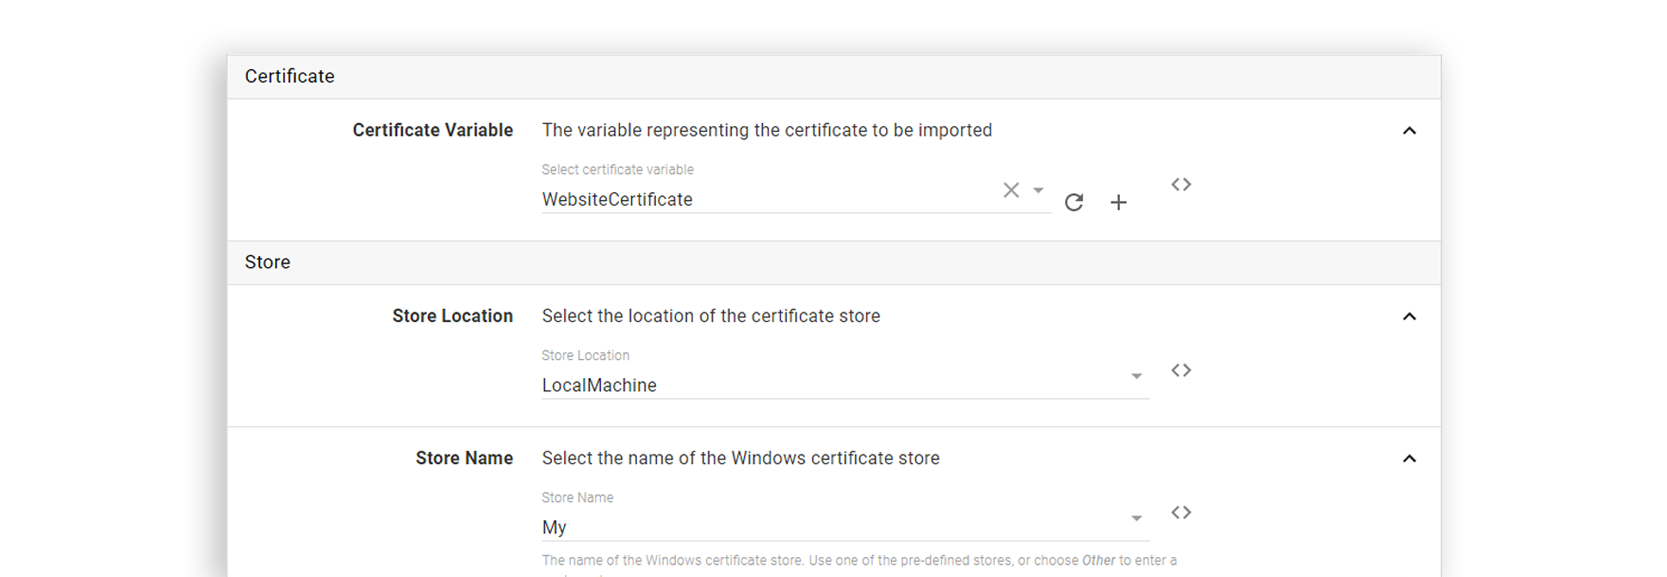 Use steps in Octopus to automatically install certificates to the Windows Certificate store